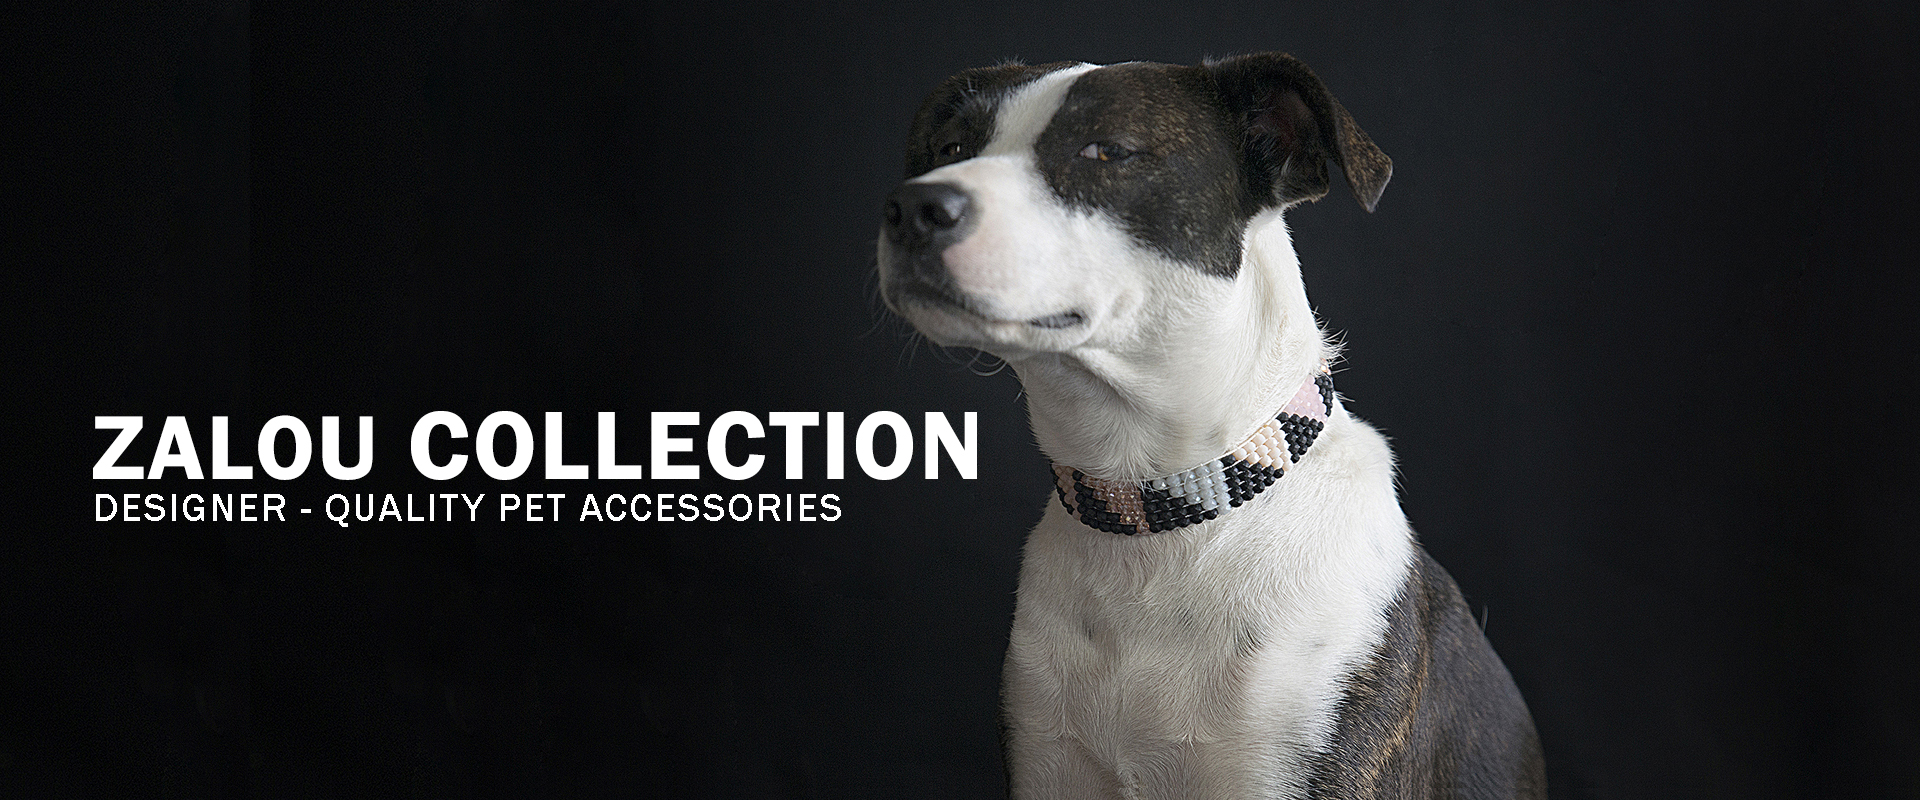 Zalou Collection | Designer-quality pet accessories by zikos